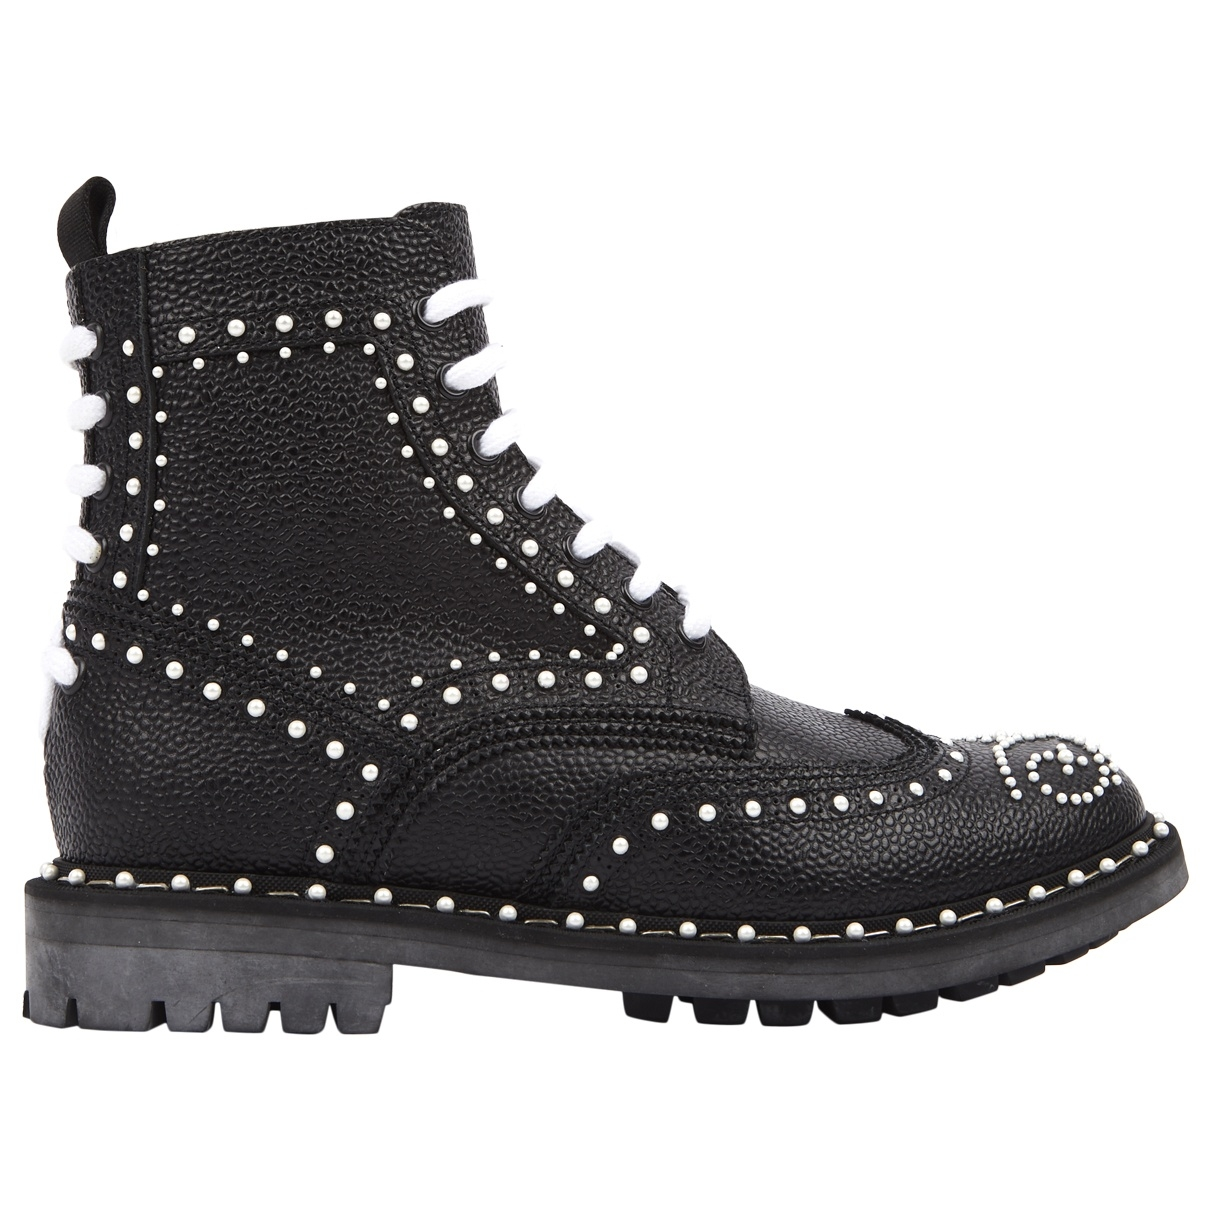 Givenchy \N Black Leather Ankle boots for Women 39 EU